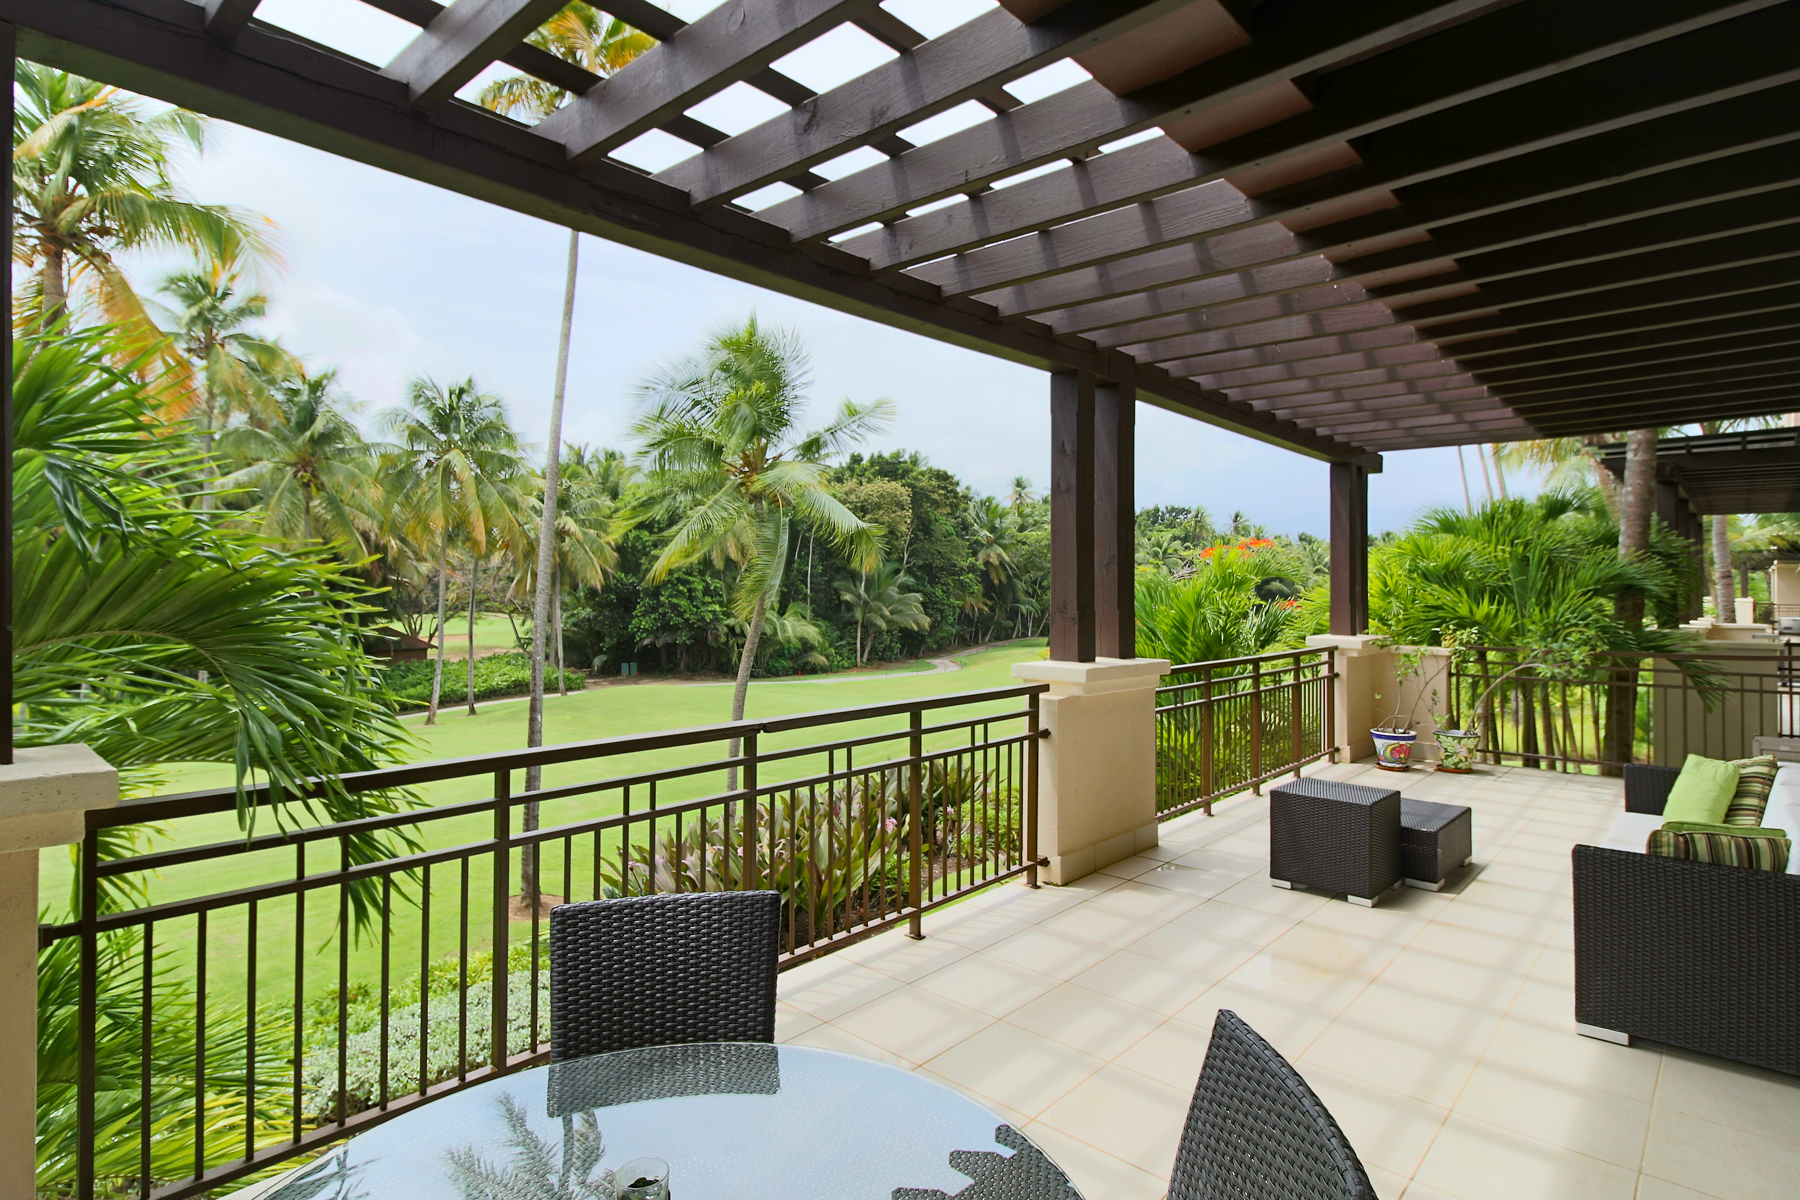 Additional photo for property listing at Fairway Villa at St Regis Bahia Beach State Rd. 187, Km. 4.2 Las Verandas Apt 3222 Bahia Beach, Puerto Rico 00745 Puerto Rico